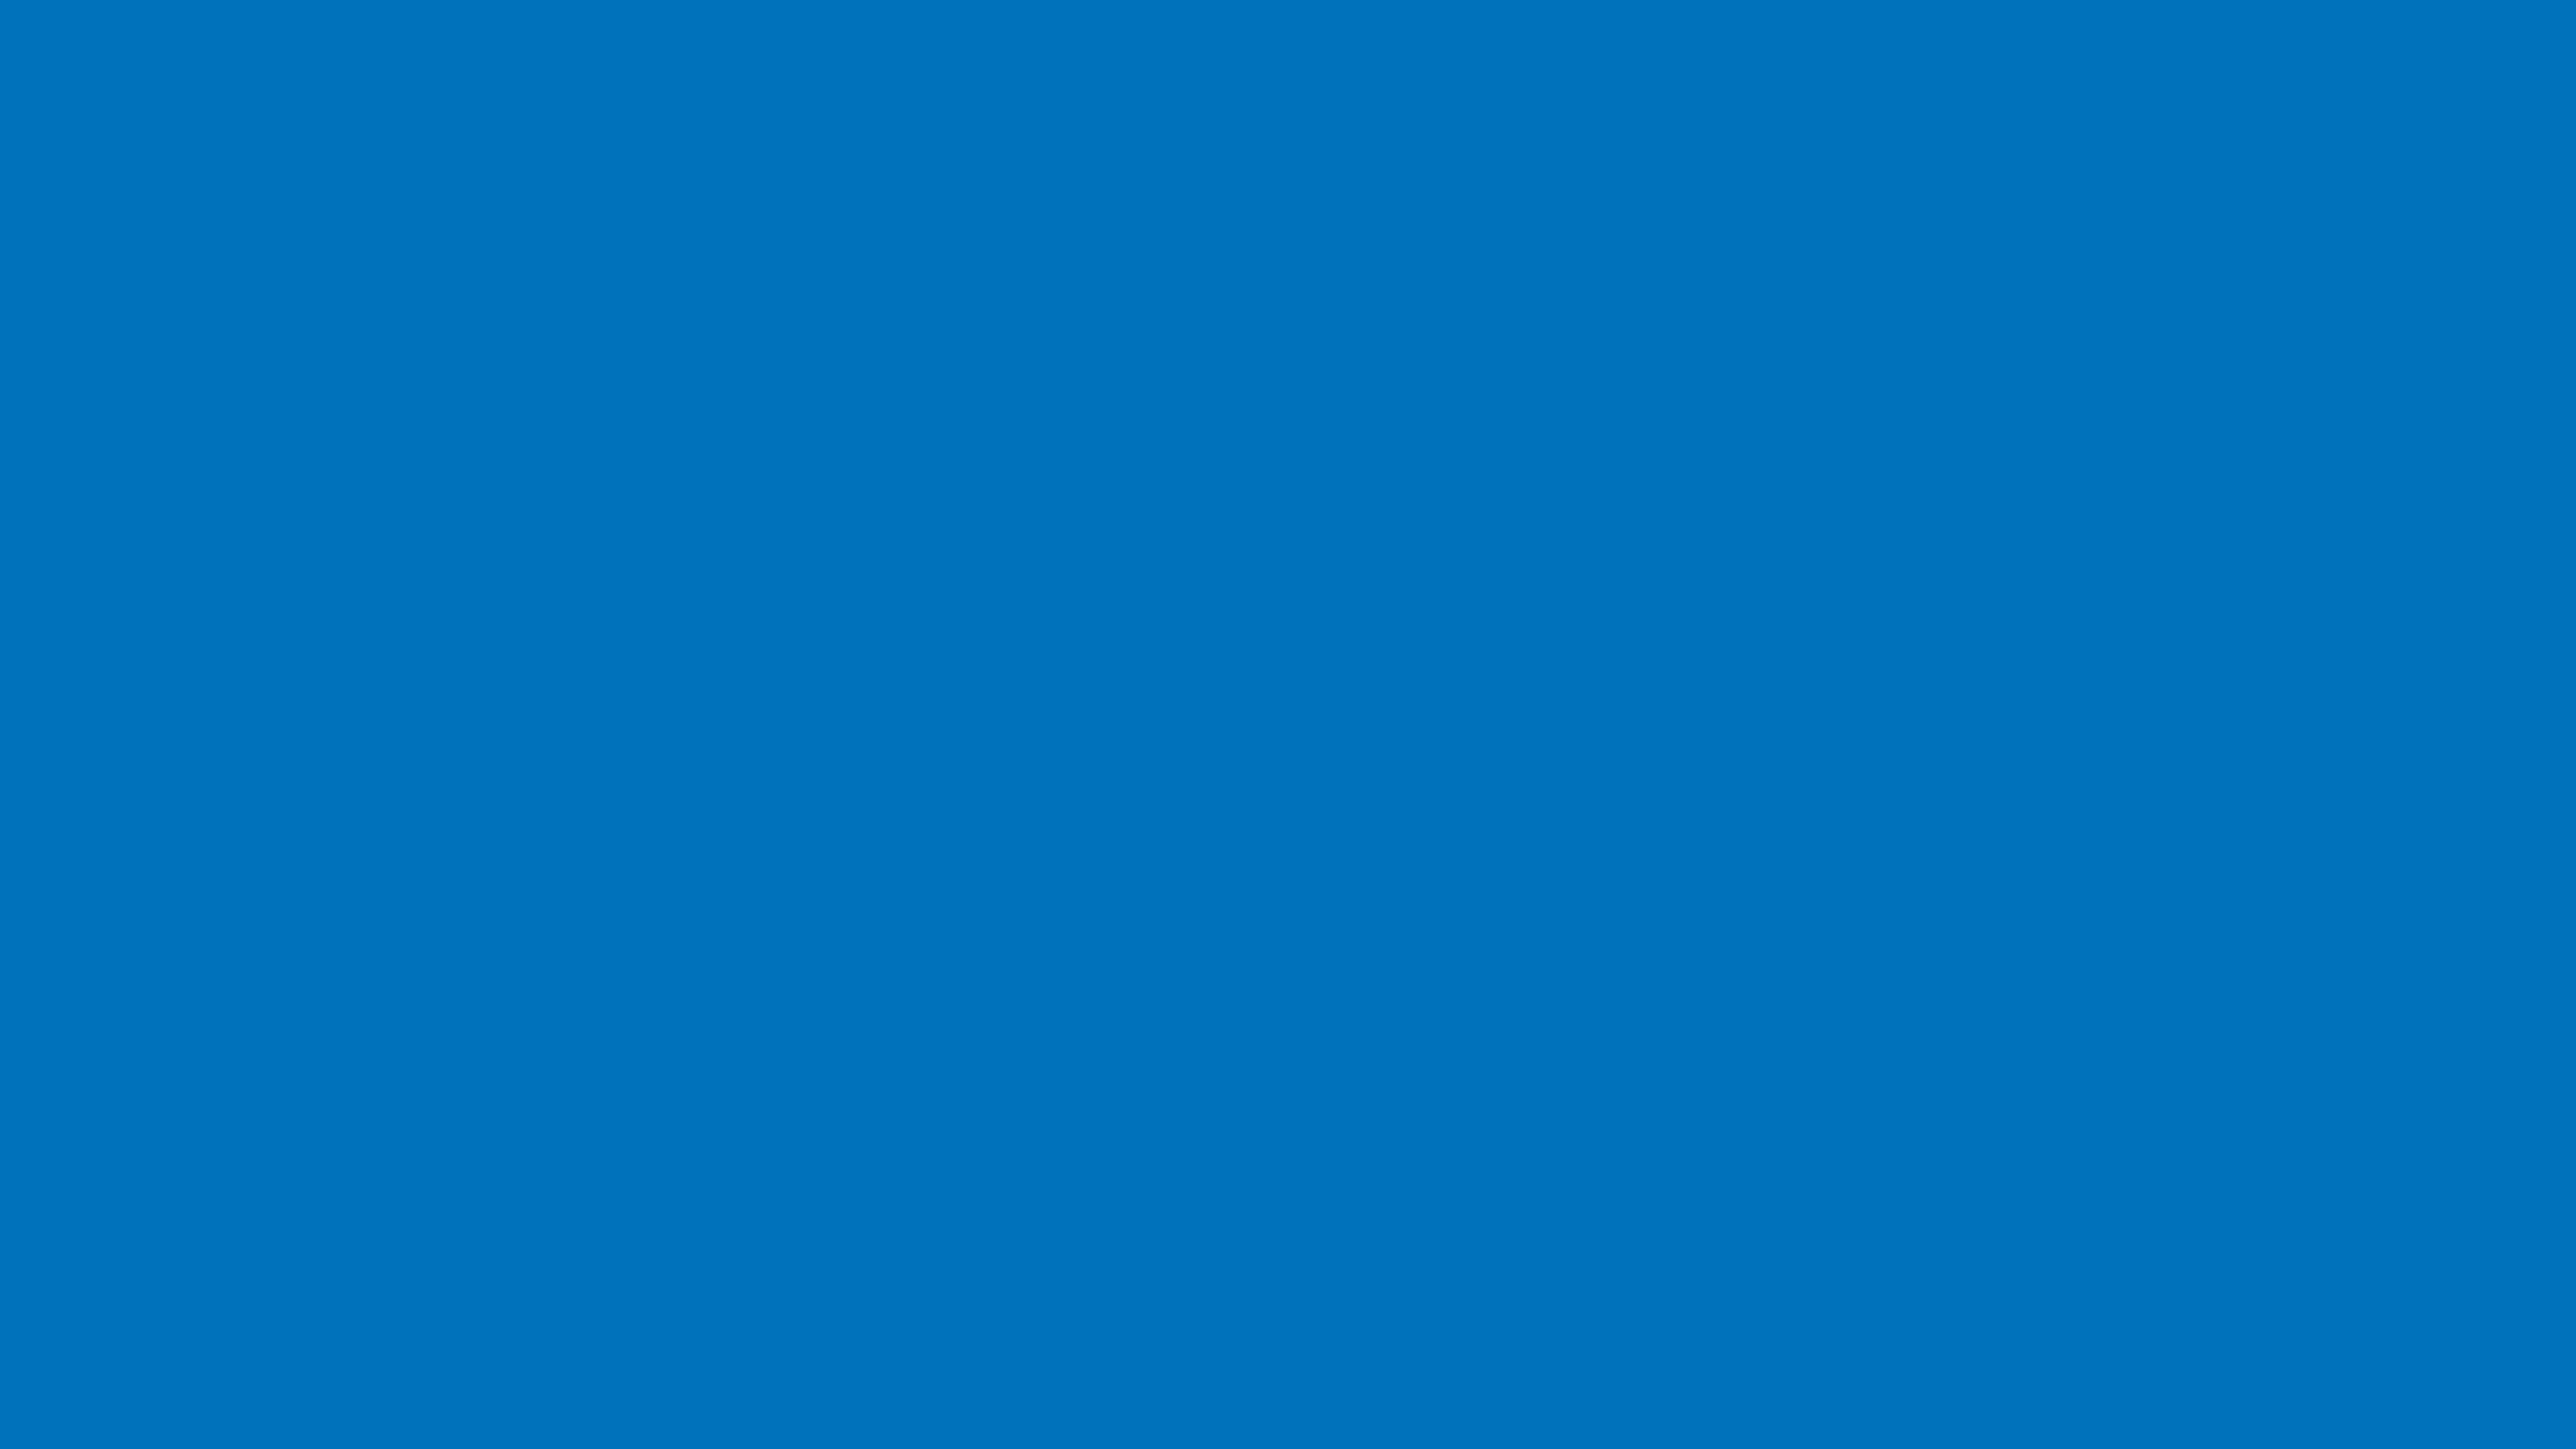 3840x2160 French Blue Solid Color Background